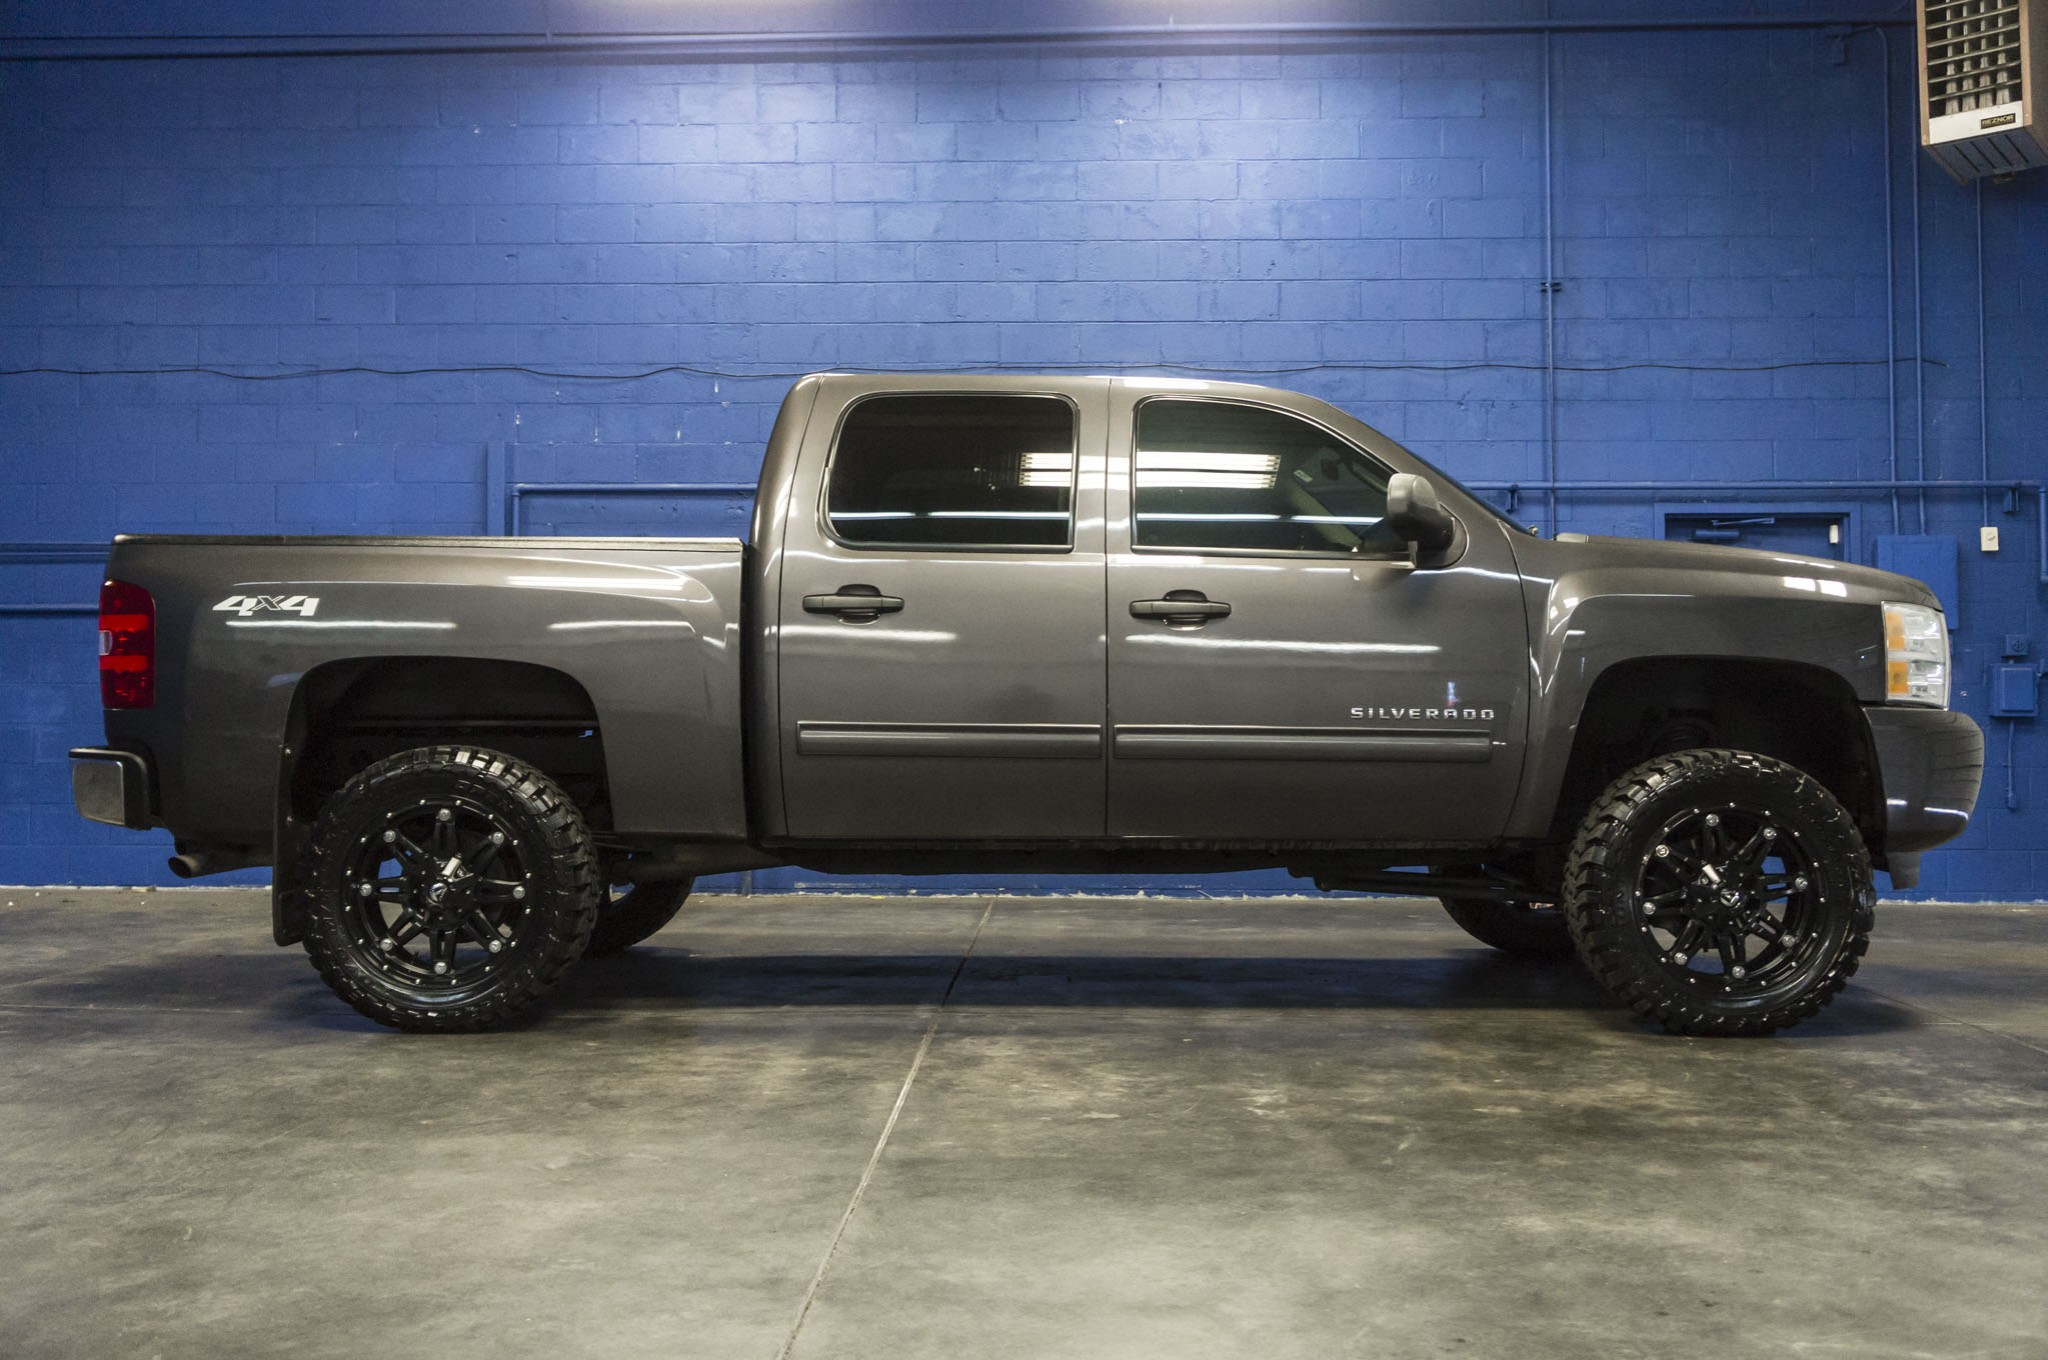 Used Lifted 2010 Chevrolet Silverado 1500 LT 4x4 Truck For